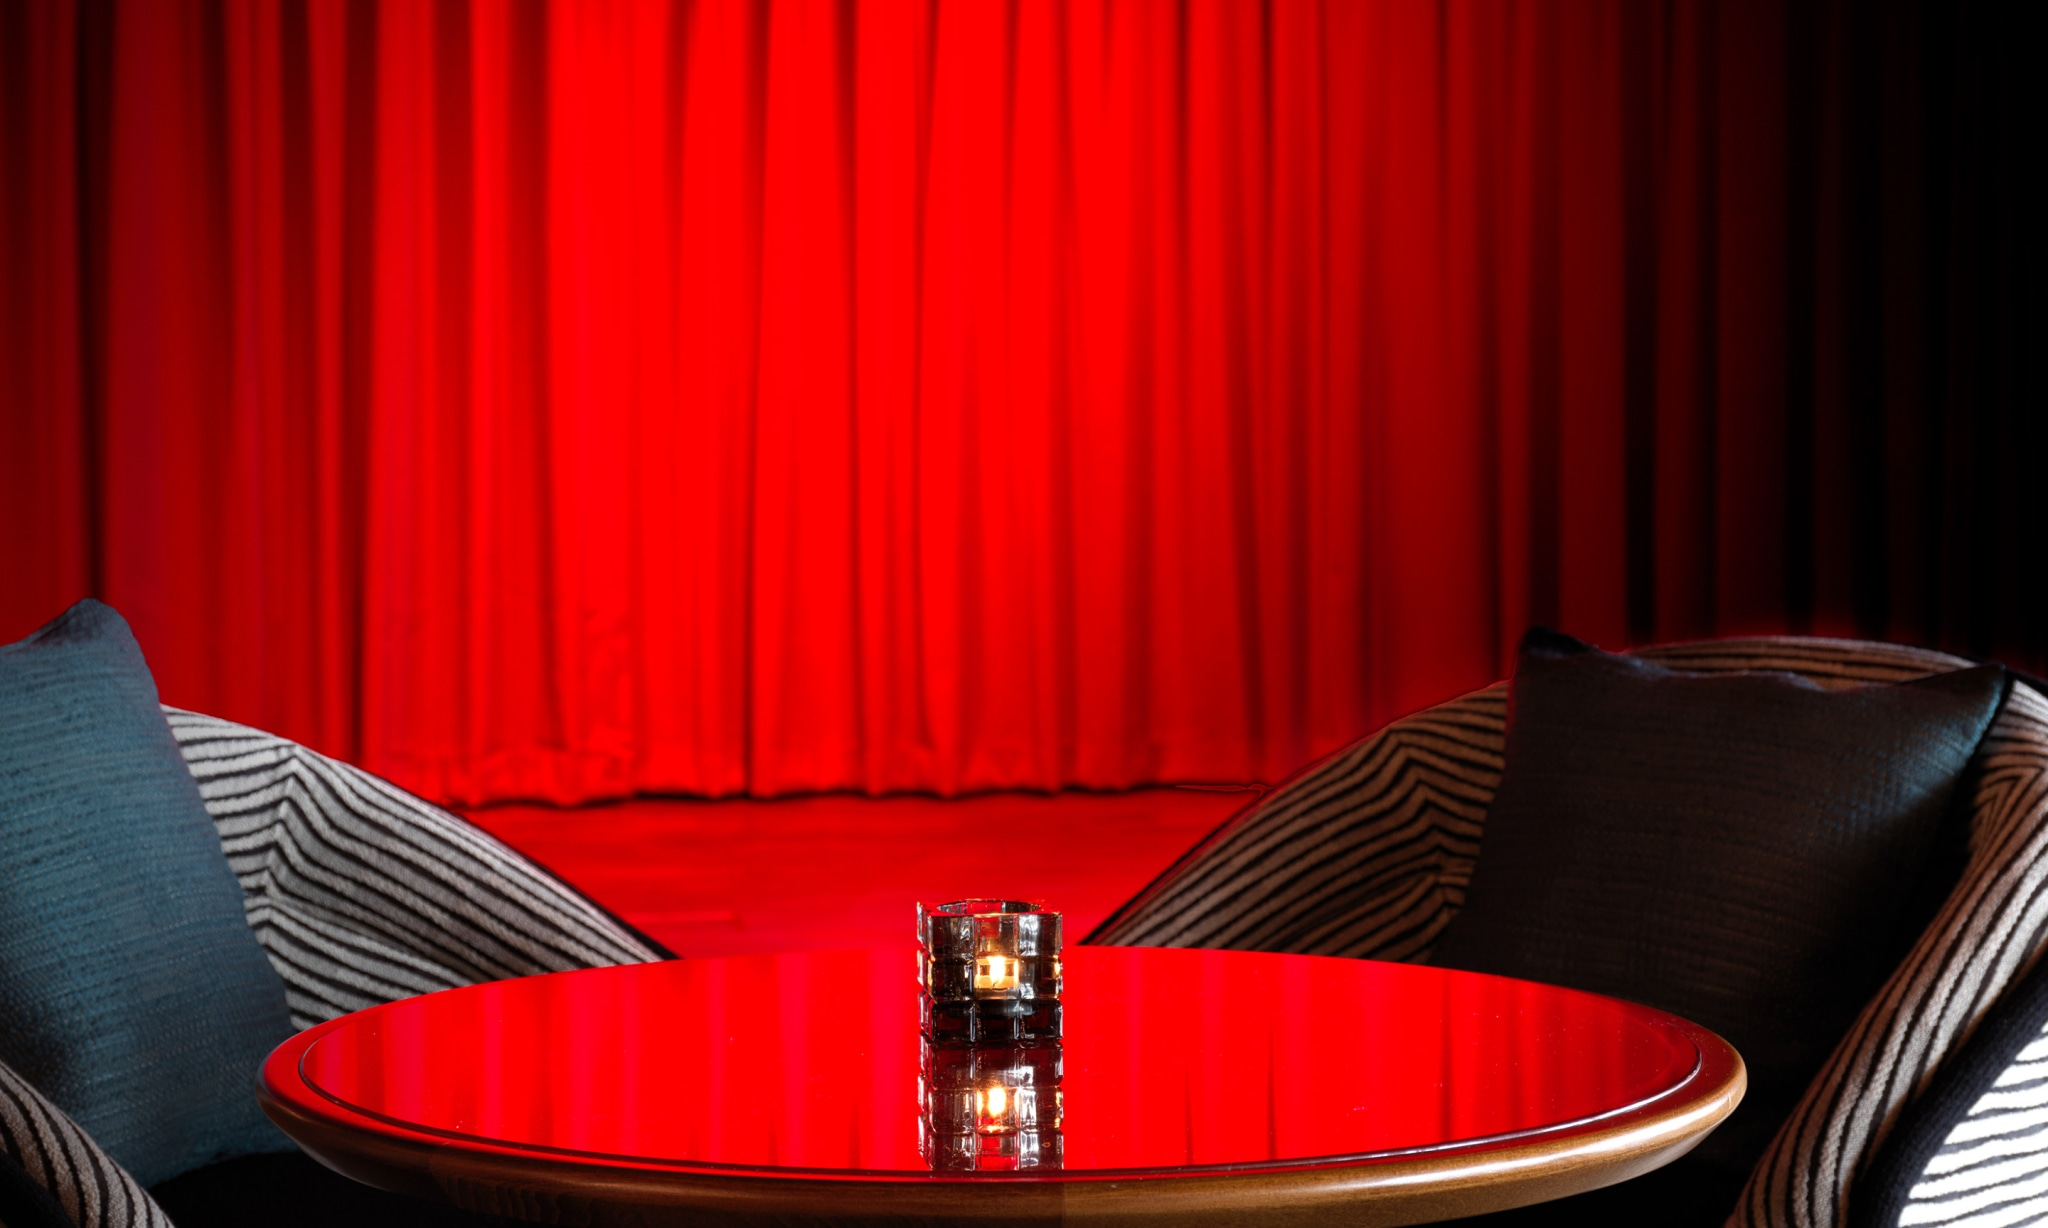 A stage is bathed in red light by a table and chairs.